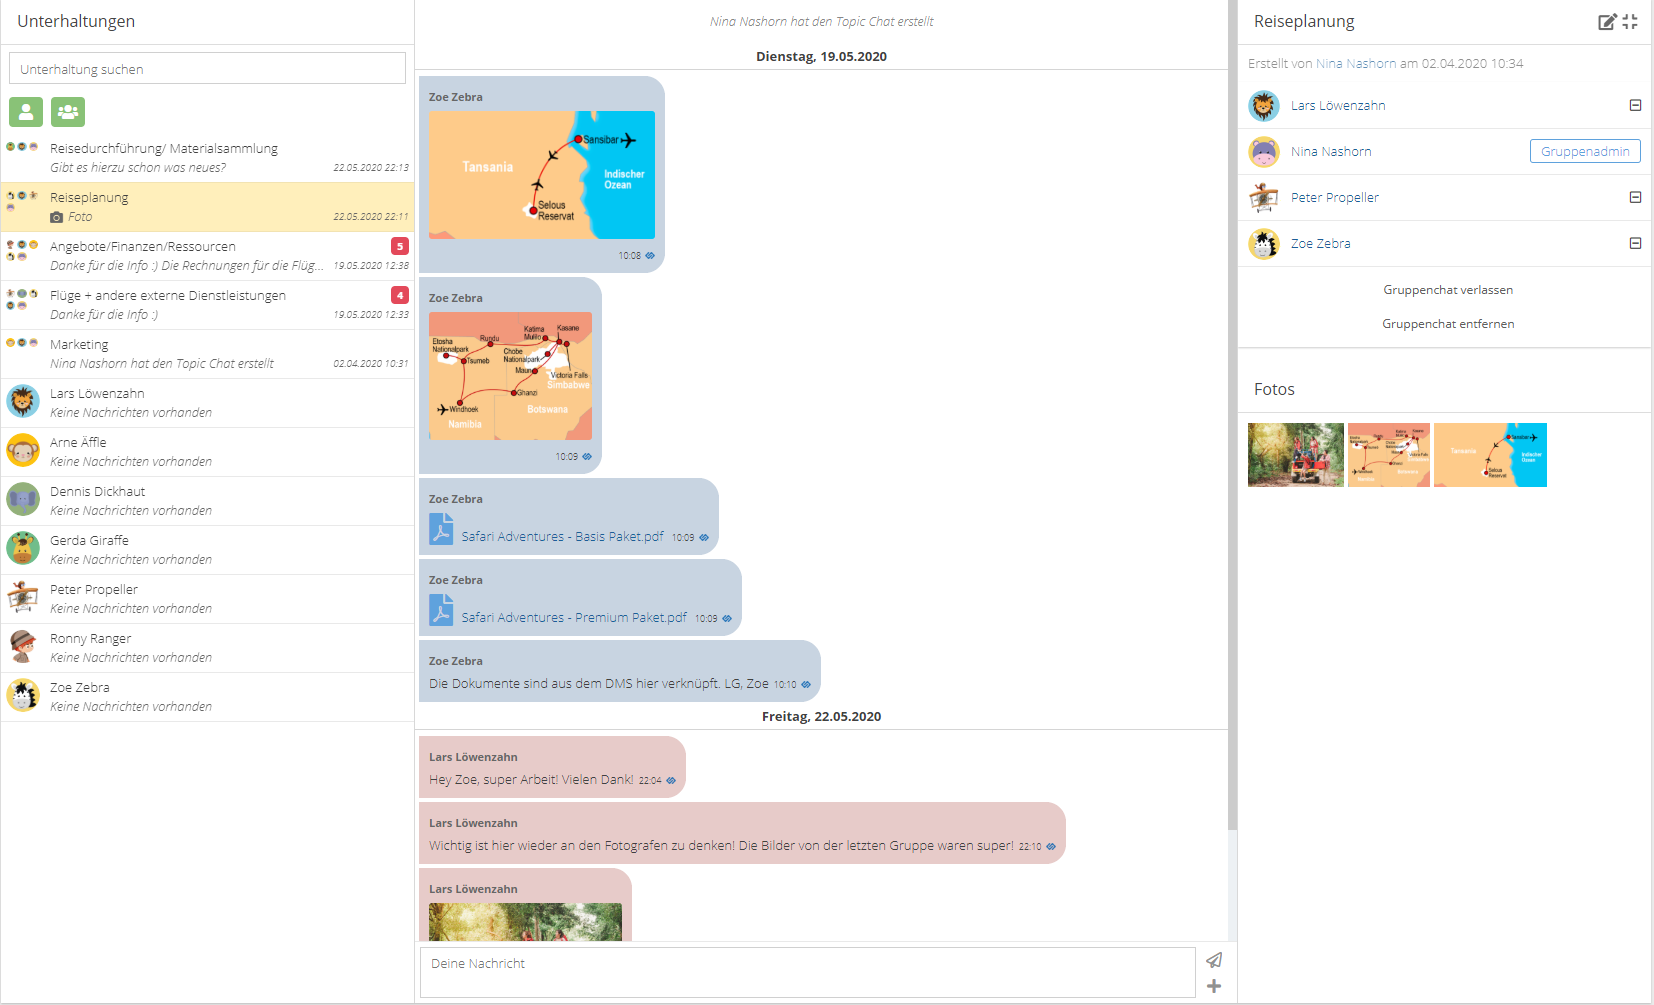 Stay in contact with your colleagues through the integrated messenger which is also available in the app. You'll receive a popup for every message.